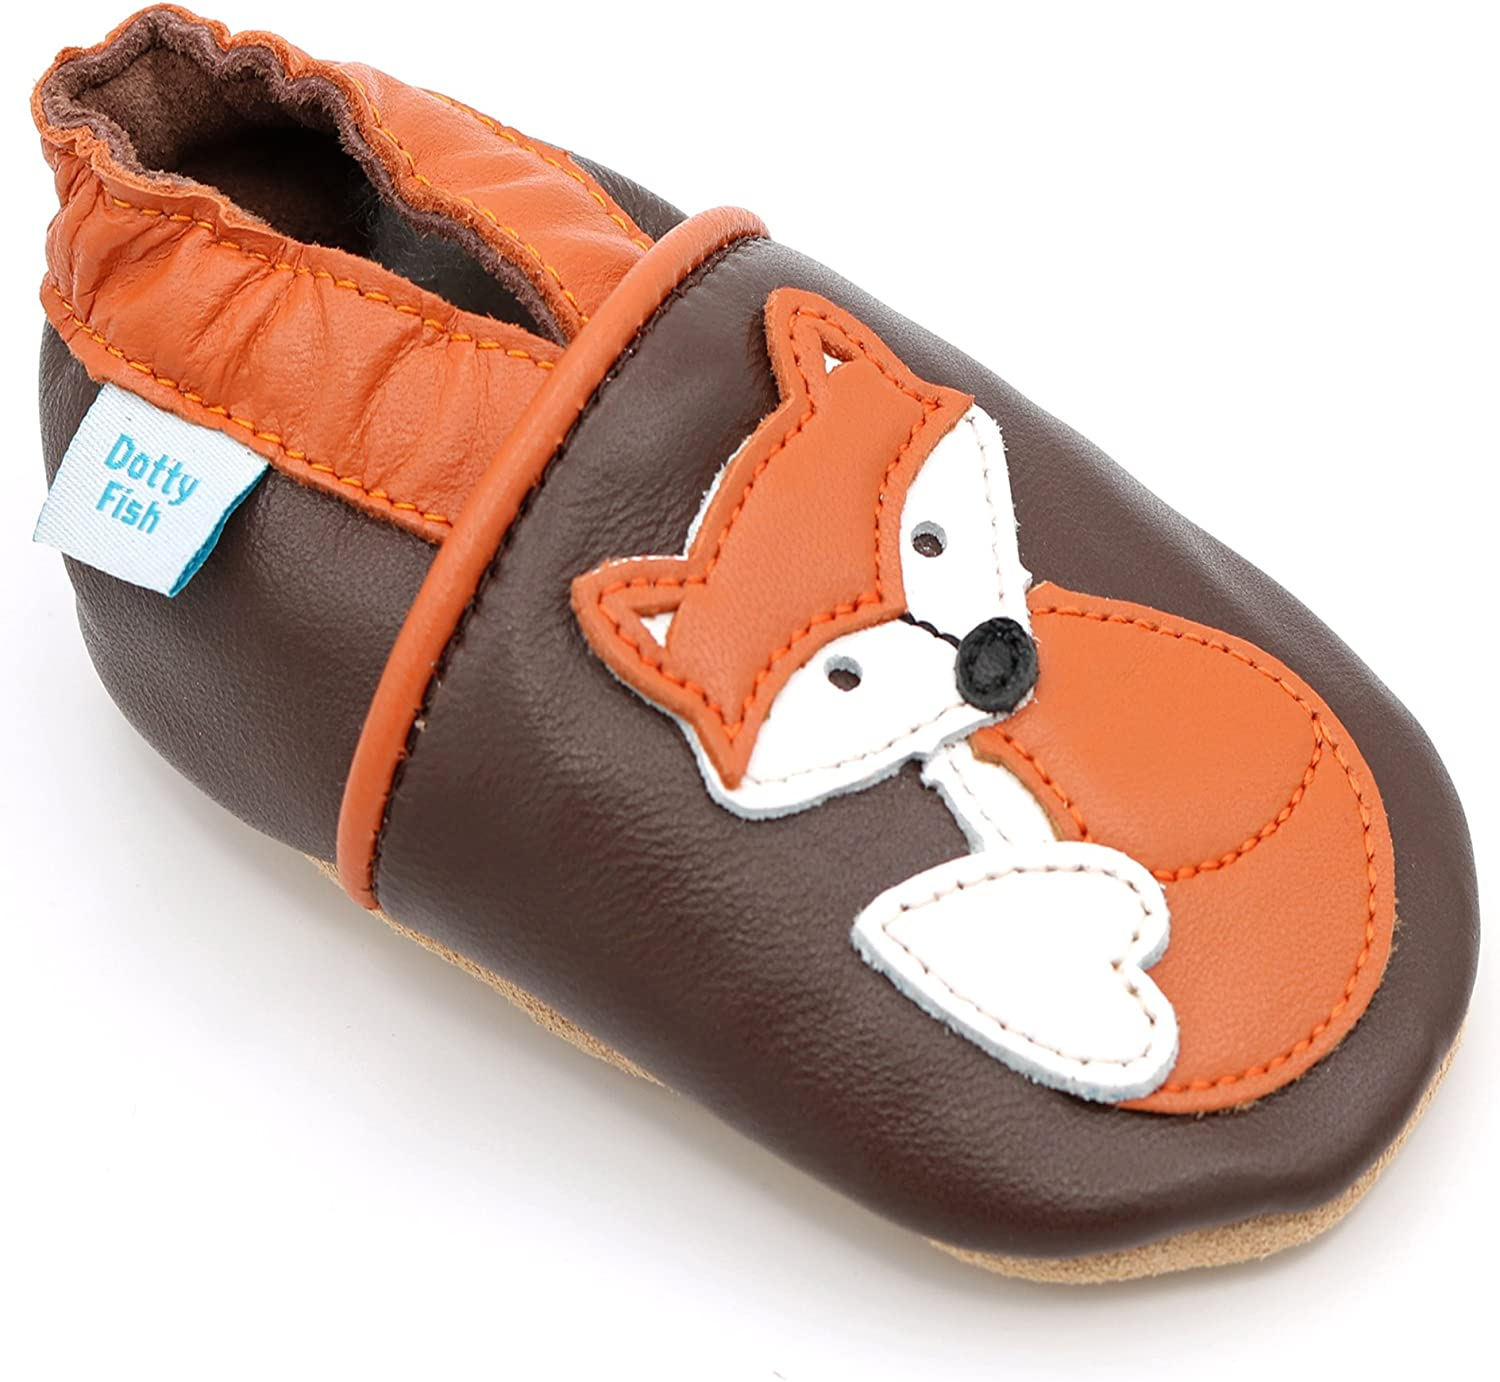 Dotty Fish Baby Shoes Cheap bargain Unisex Sole Cheap sale Soft Leather Crib